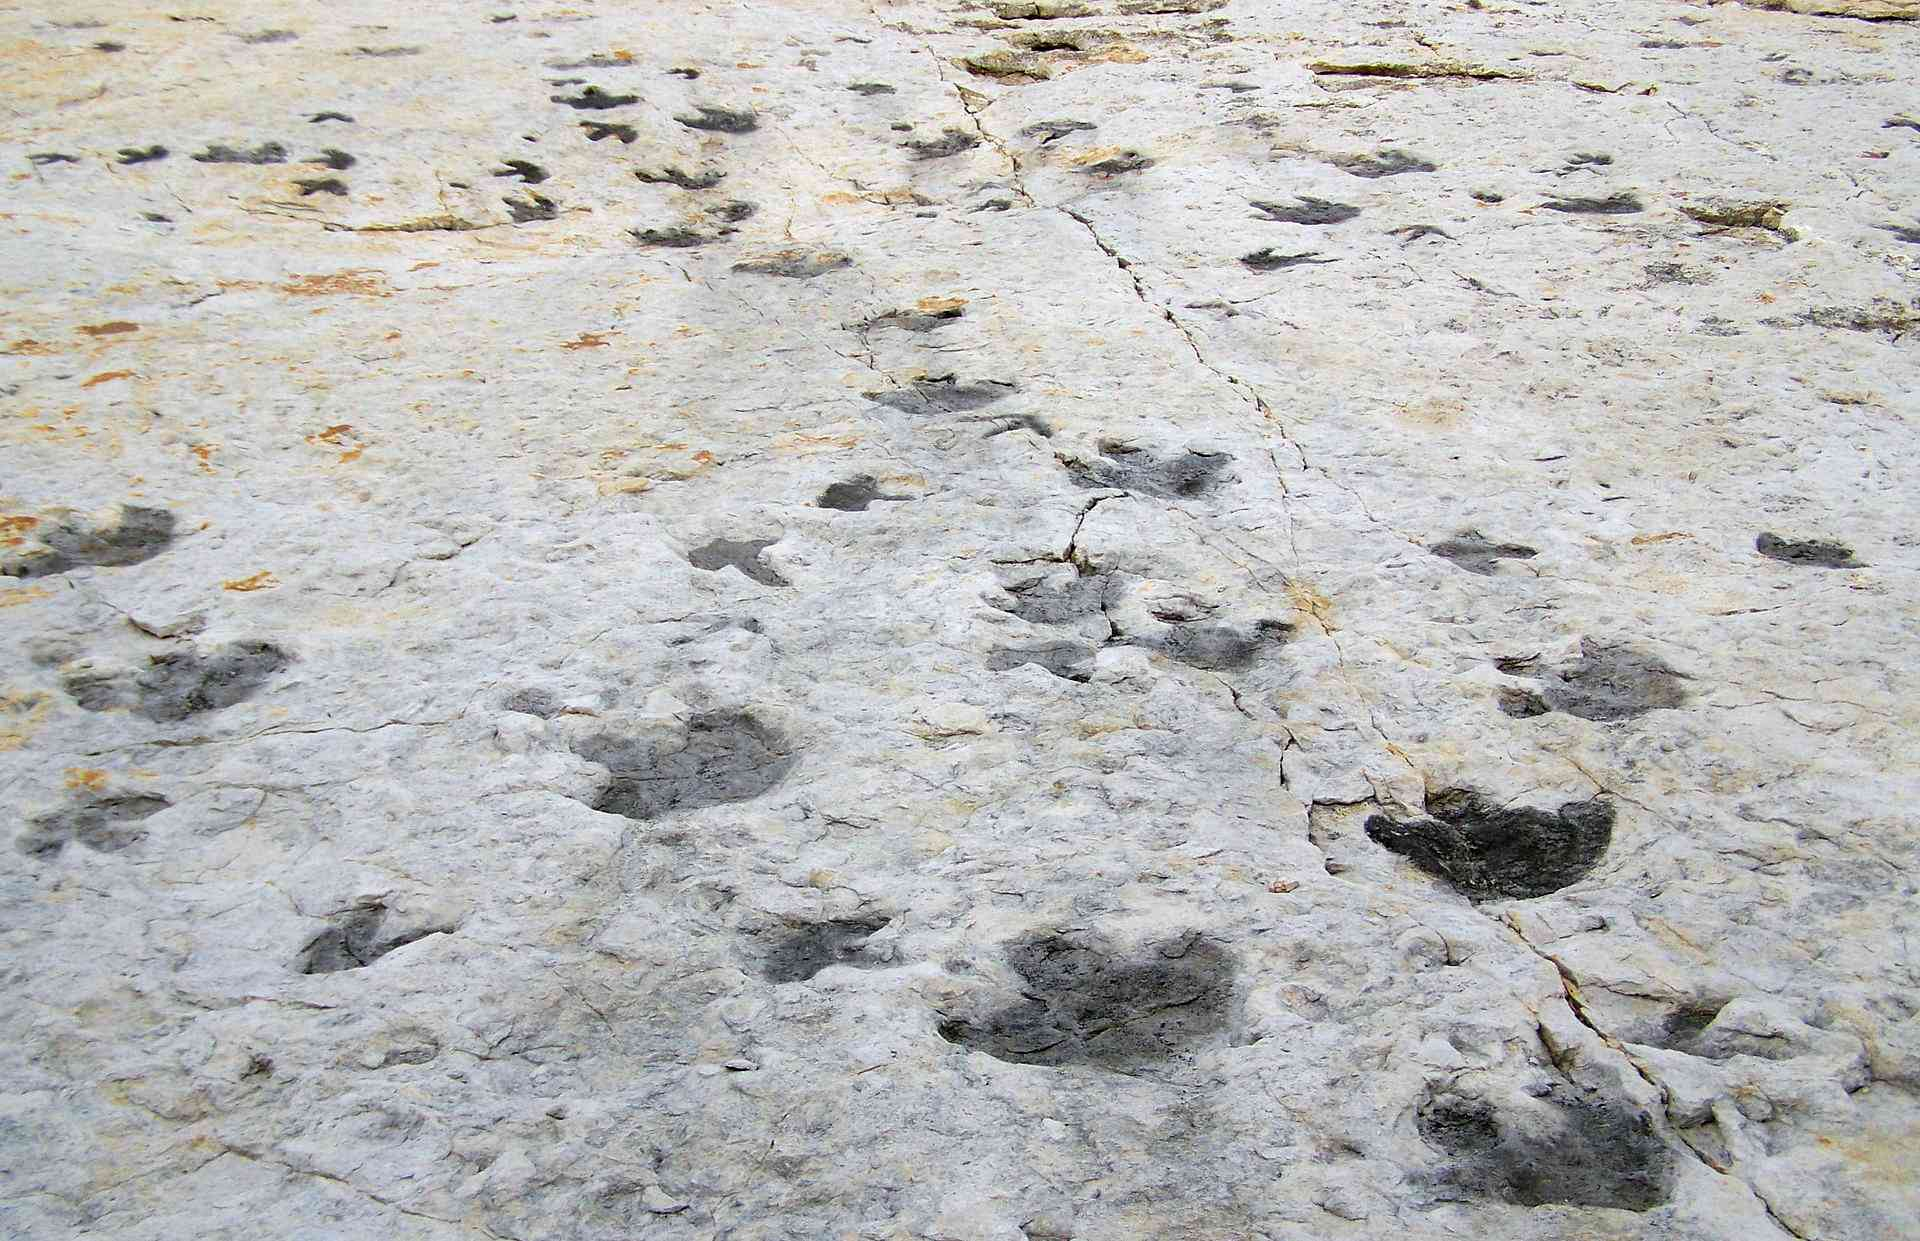 A collection of dinosaur tracks seen in smooth, gray rock